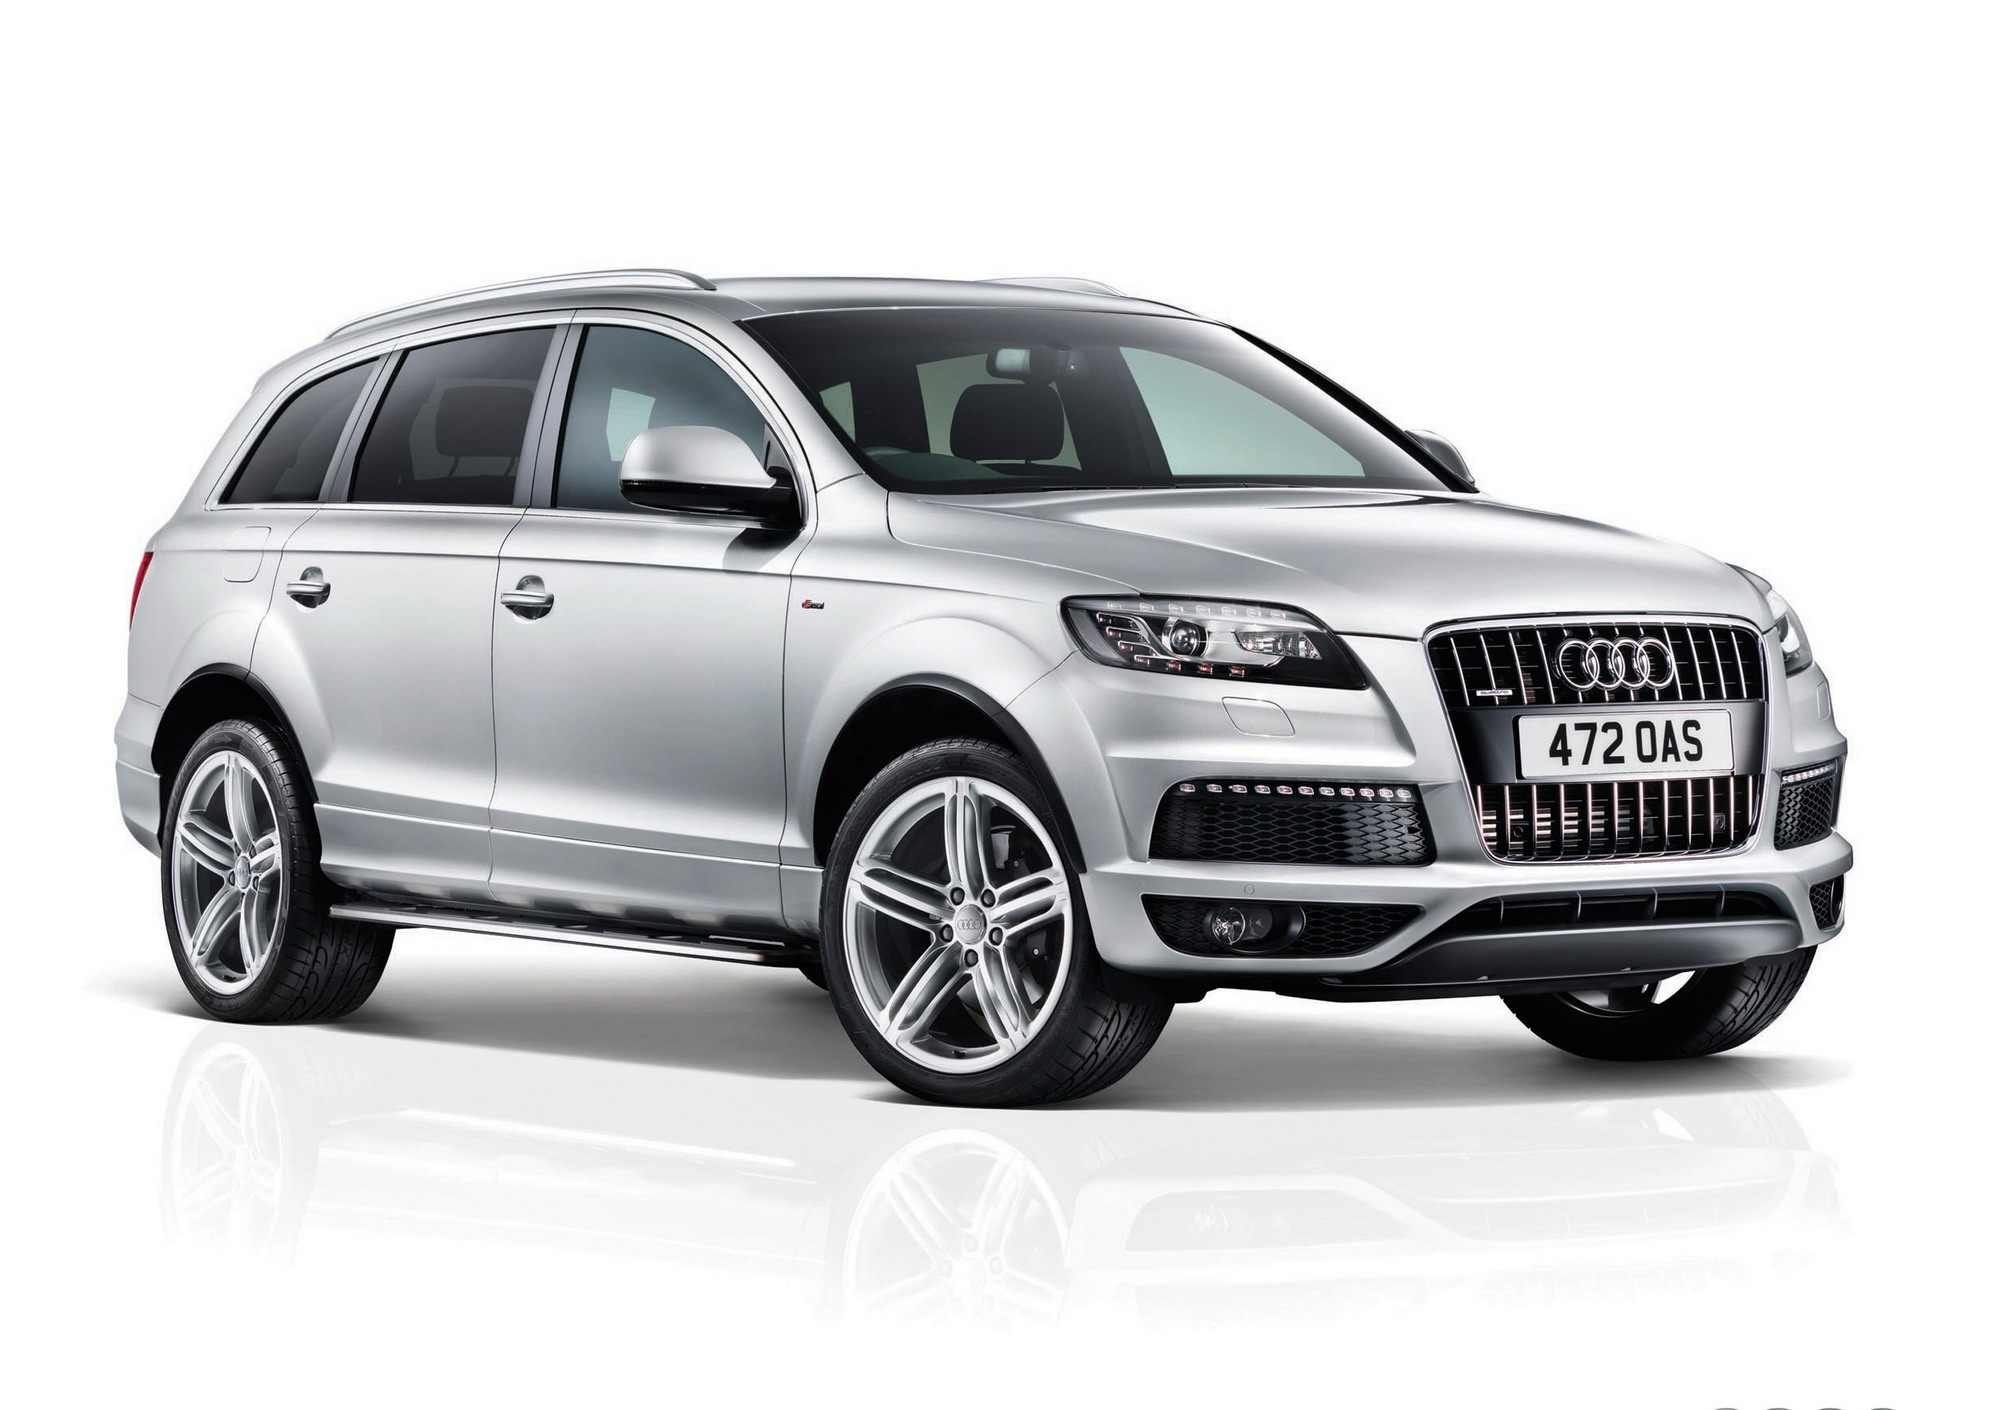 2012 audi q7 3 0 tdi s line plus review gallery top speed. Black Bedroom Furniture Sets. Home Design Ideas